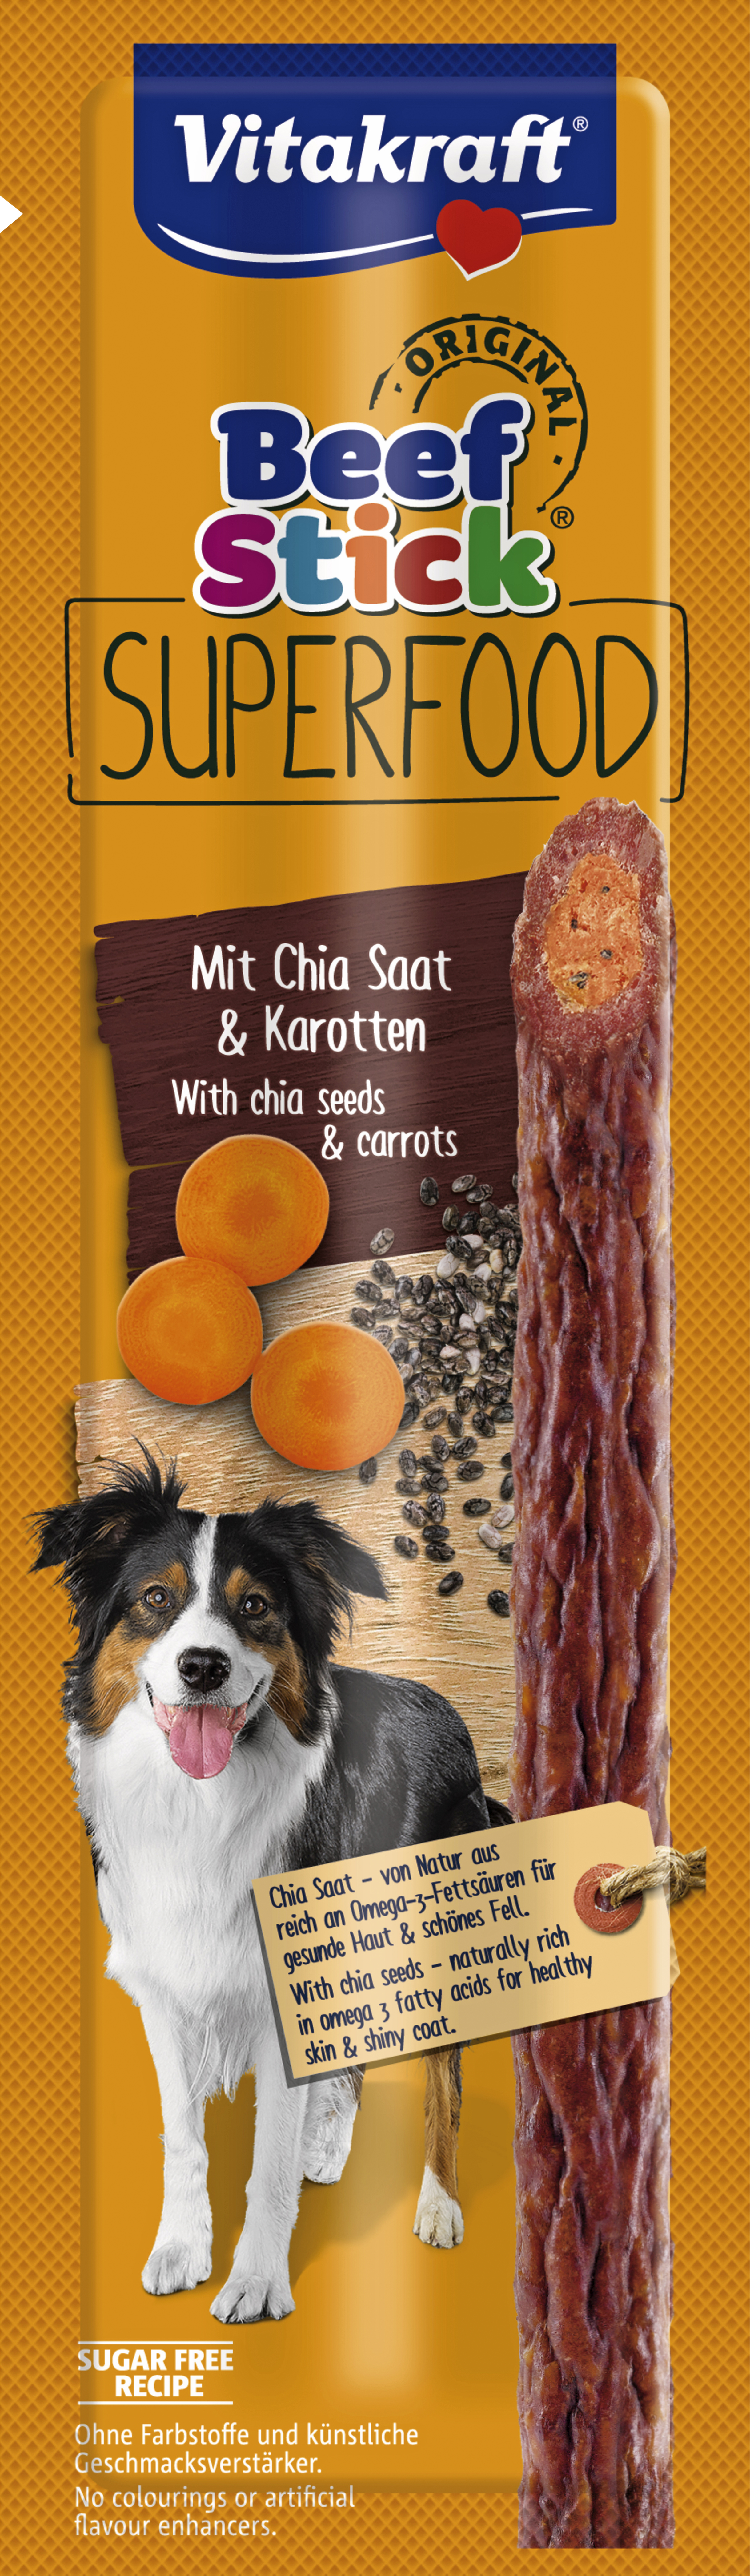 Hundgodis Vitakraft Beef Stick Superfood Chia och Morot